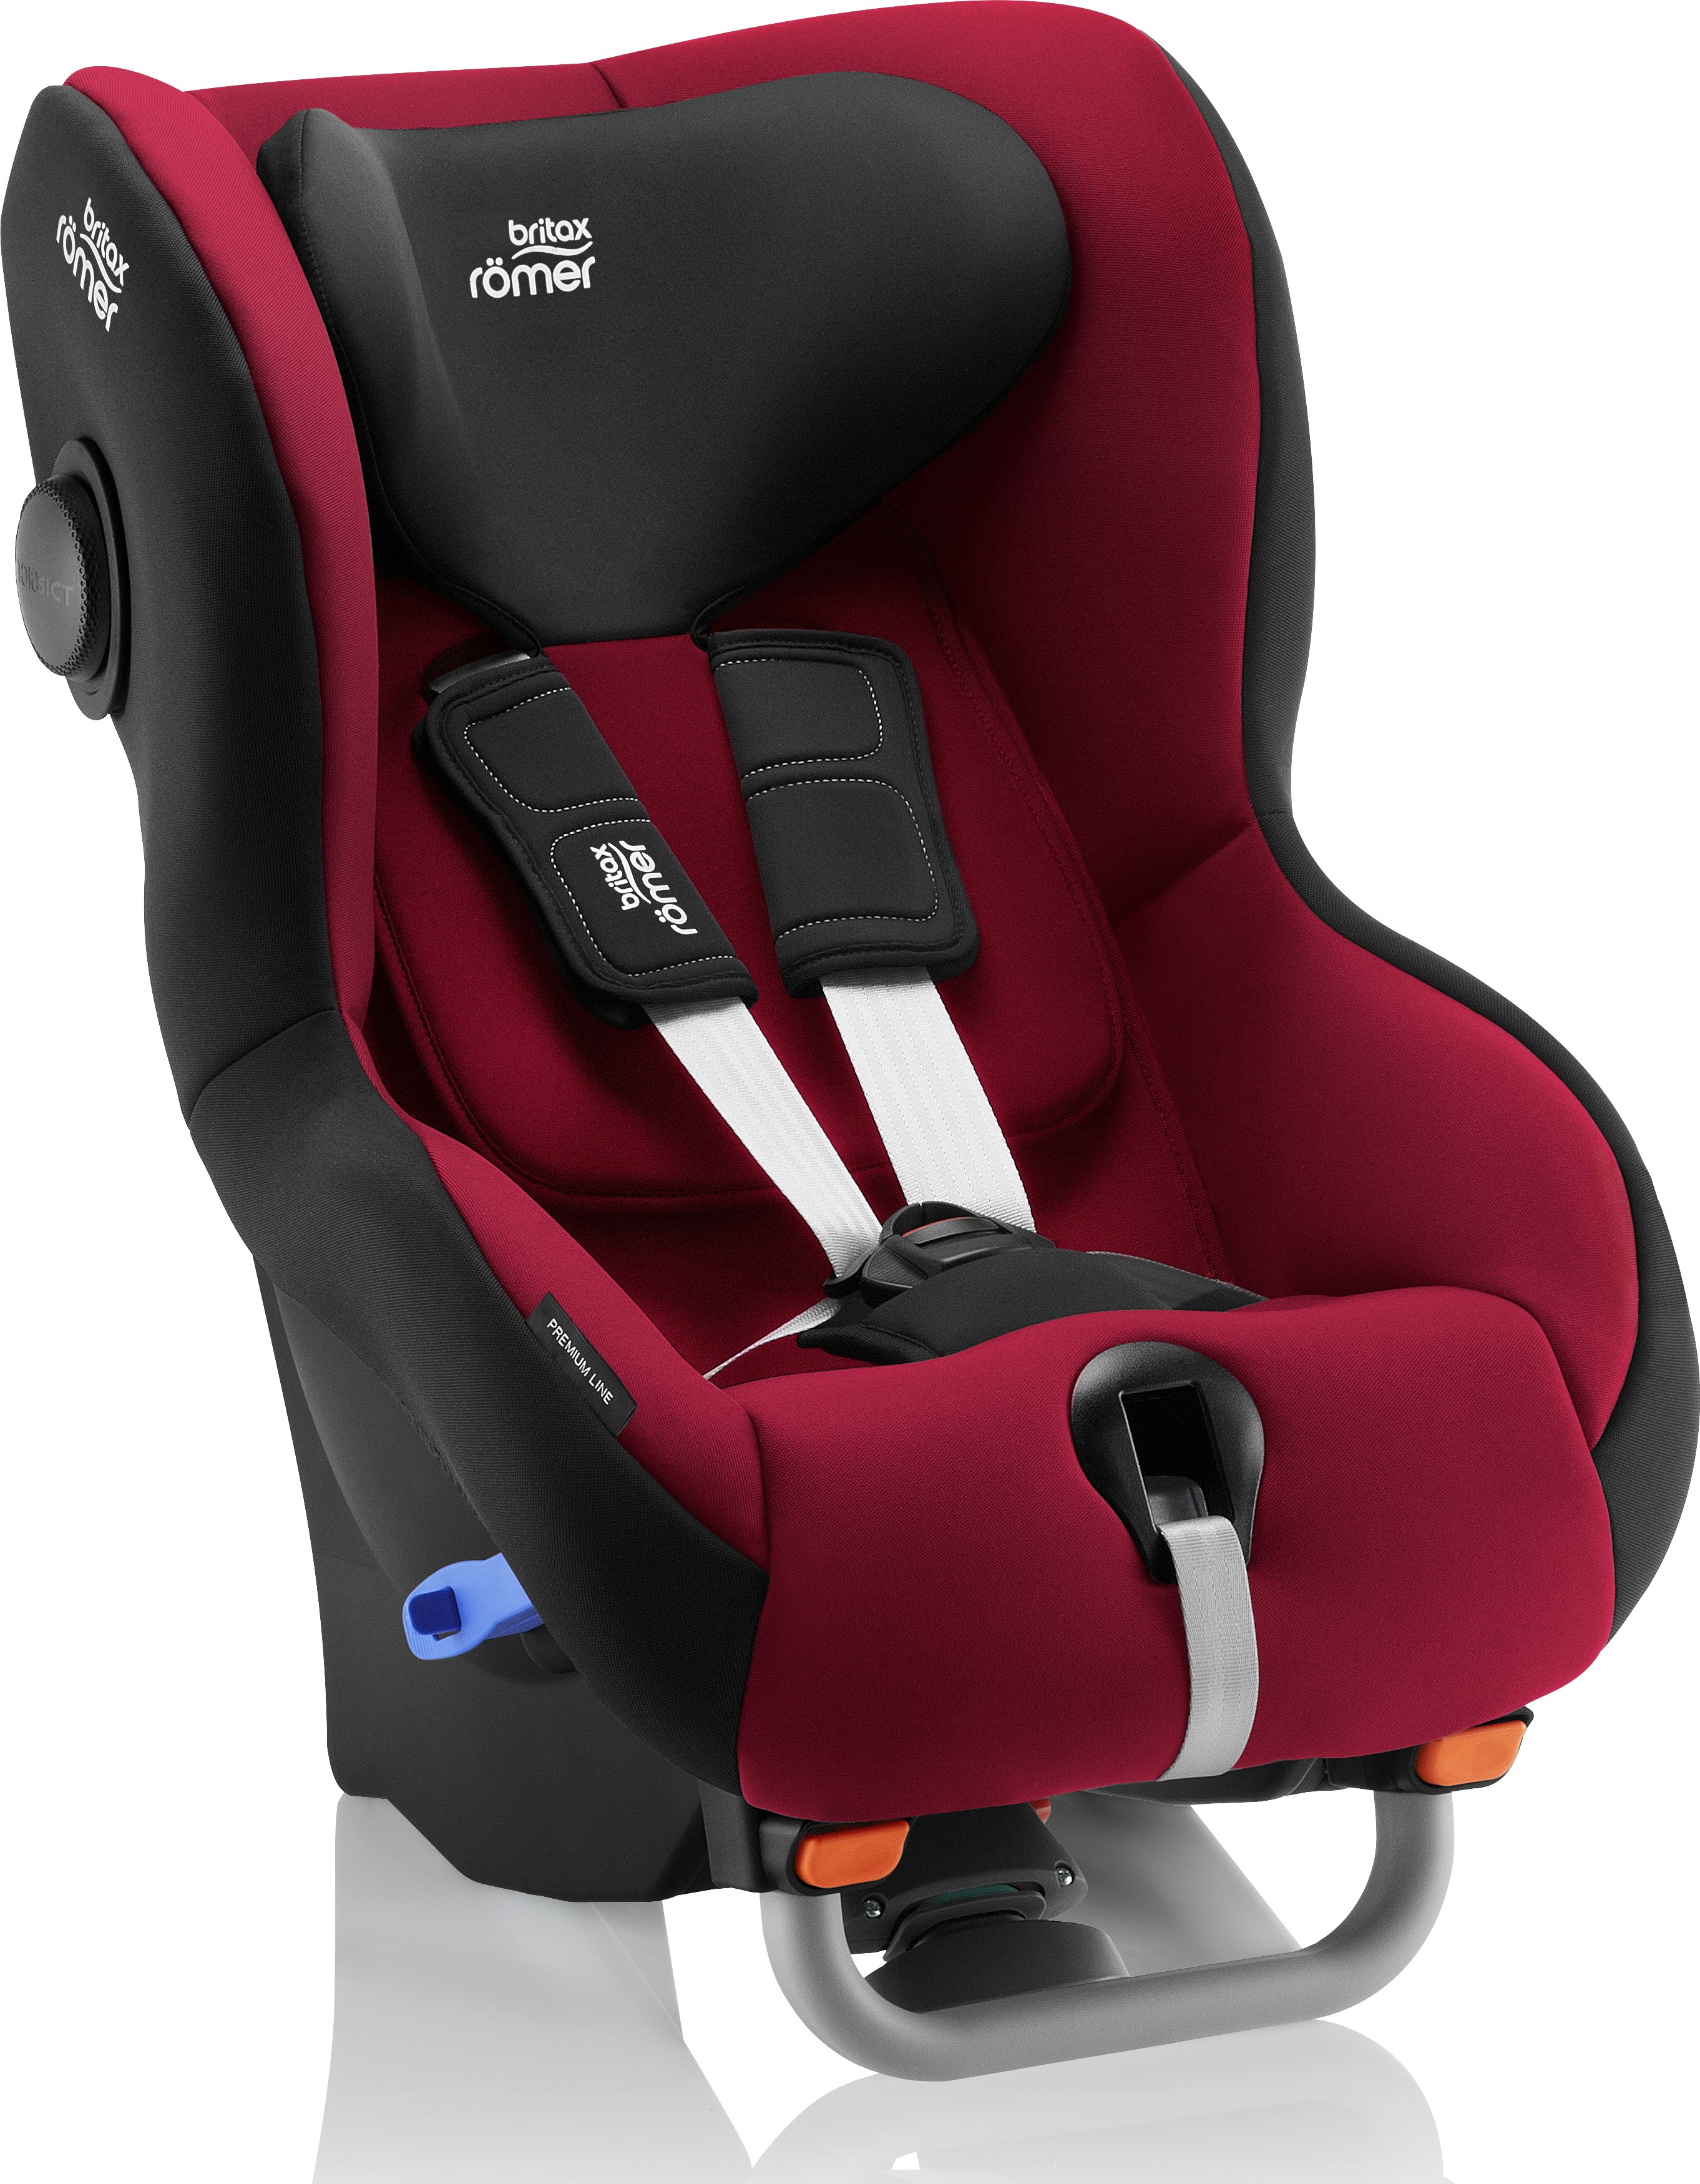 britax romer max-way plus flame red